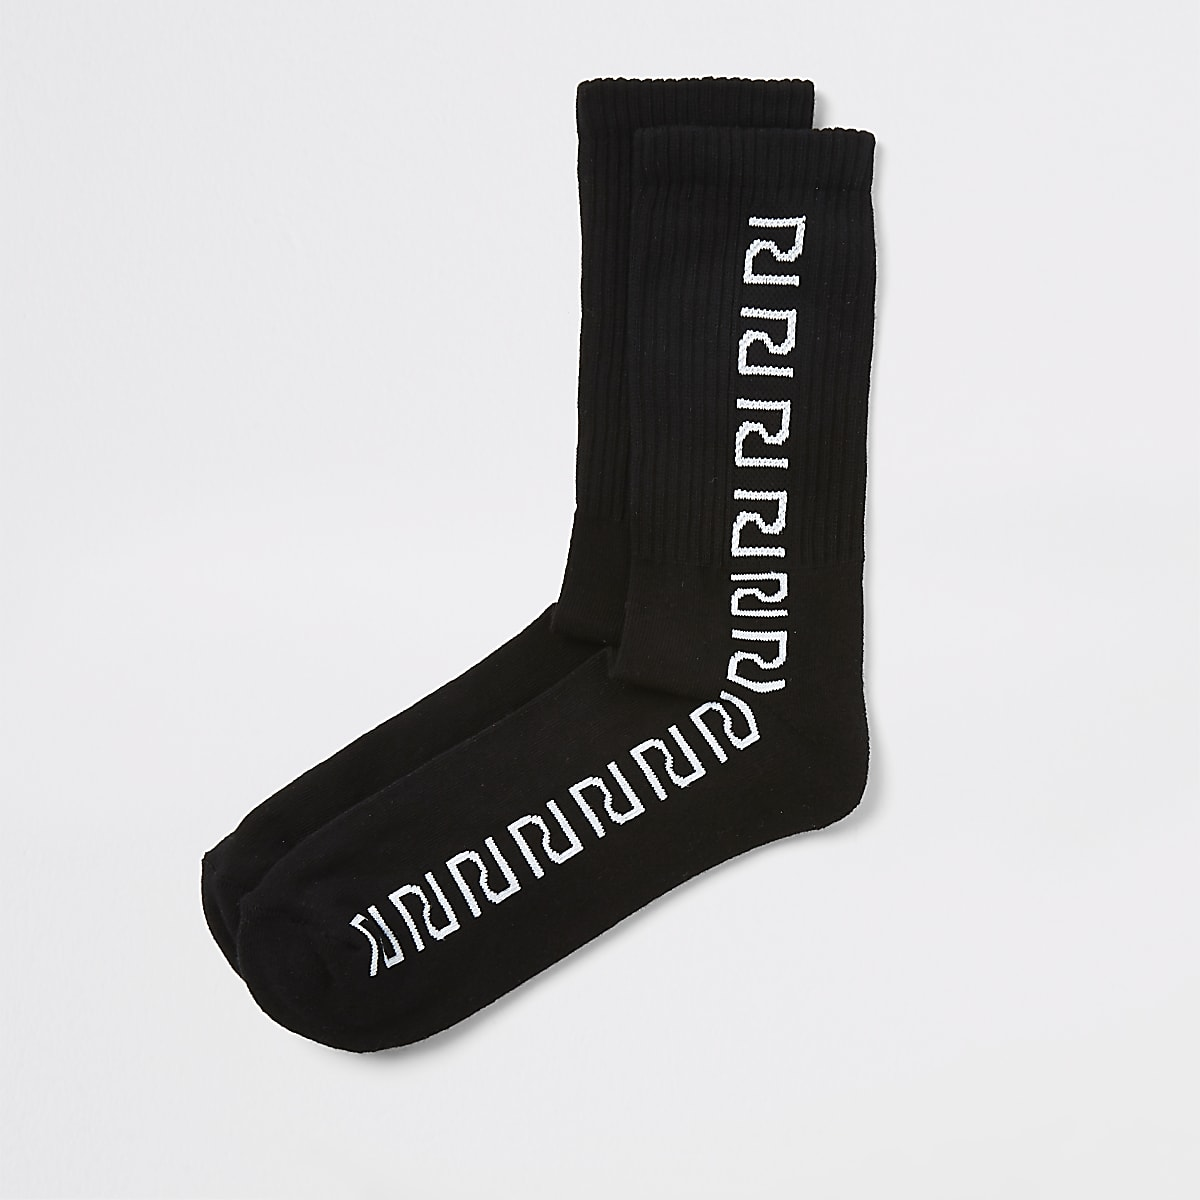 Black RI tube socks